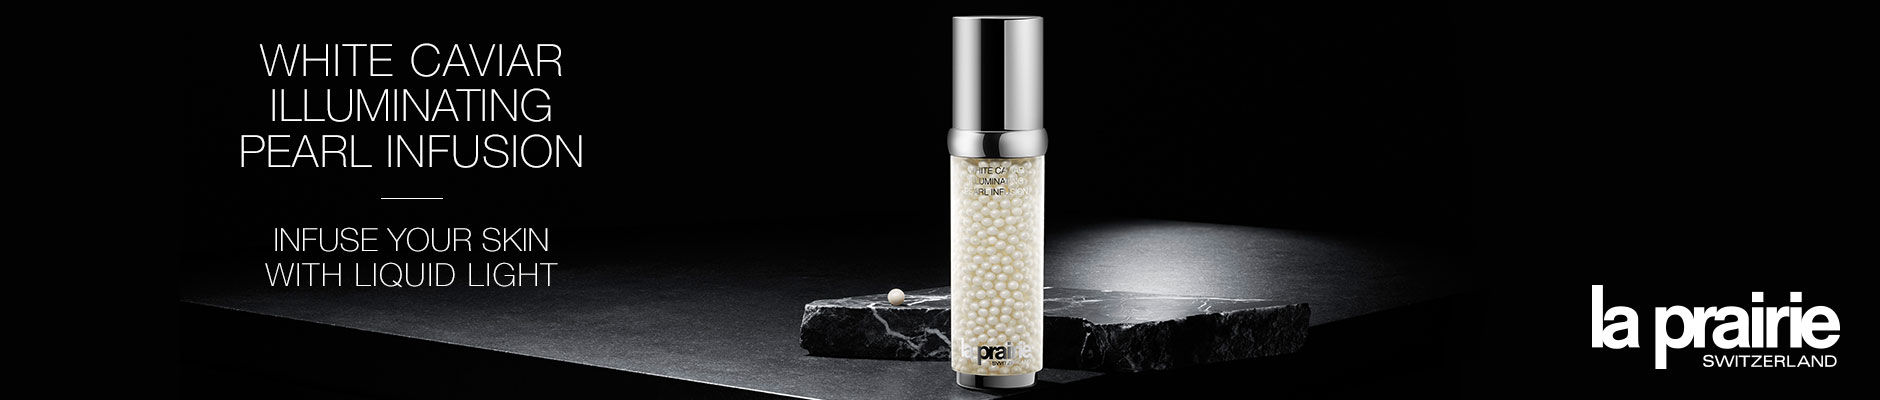 White Caviar Illuminating Pearl Infusion - Infuse Your Skin With Liquid Light